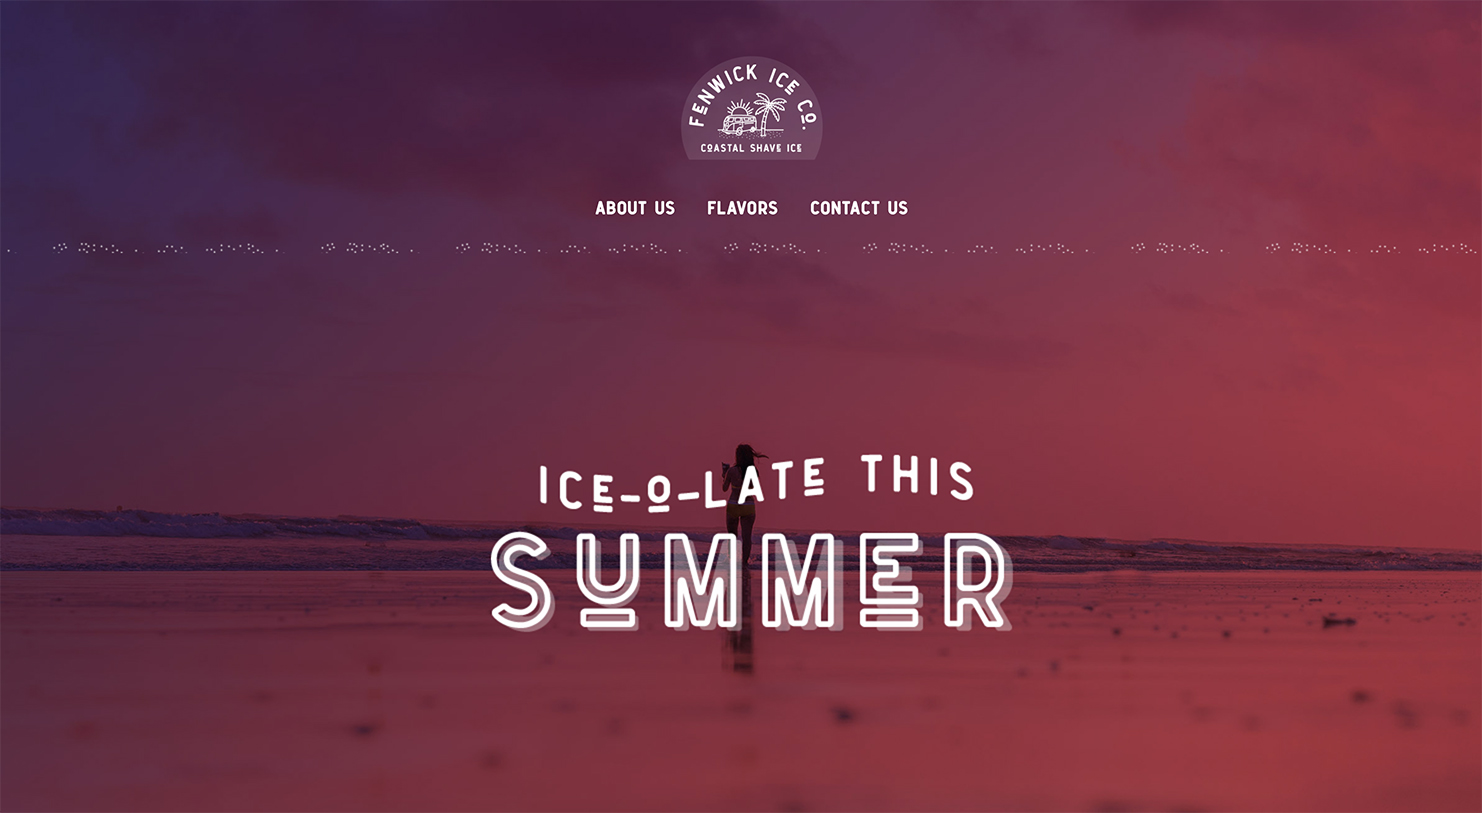 ice-o-late this summer homepage hero